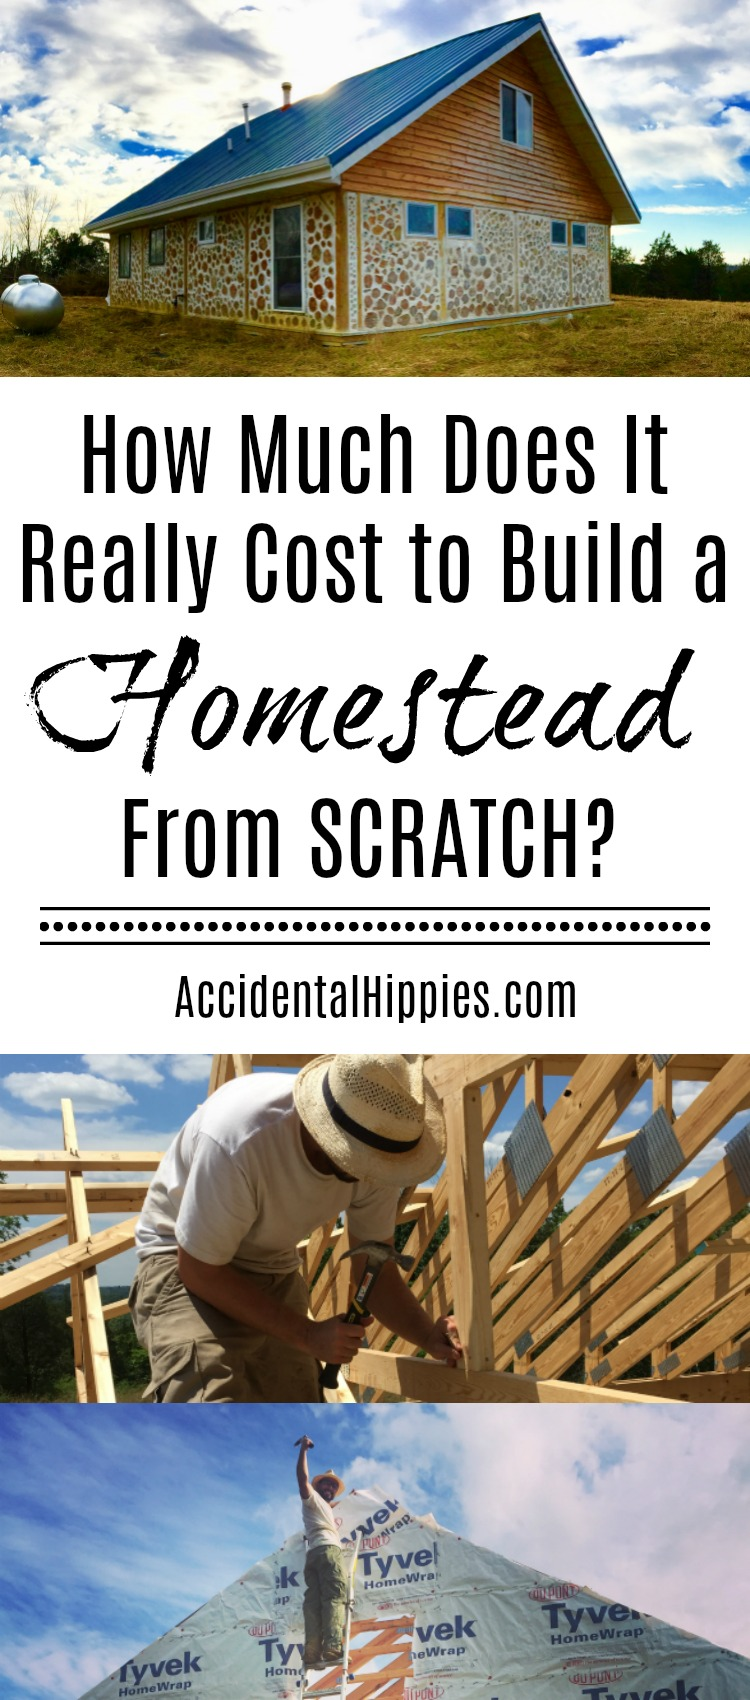 How much does it cost to build a house from scratch for How much does it really cost to build a house